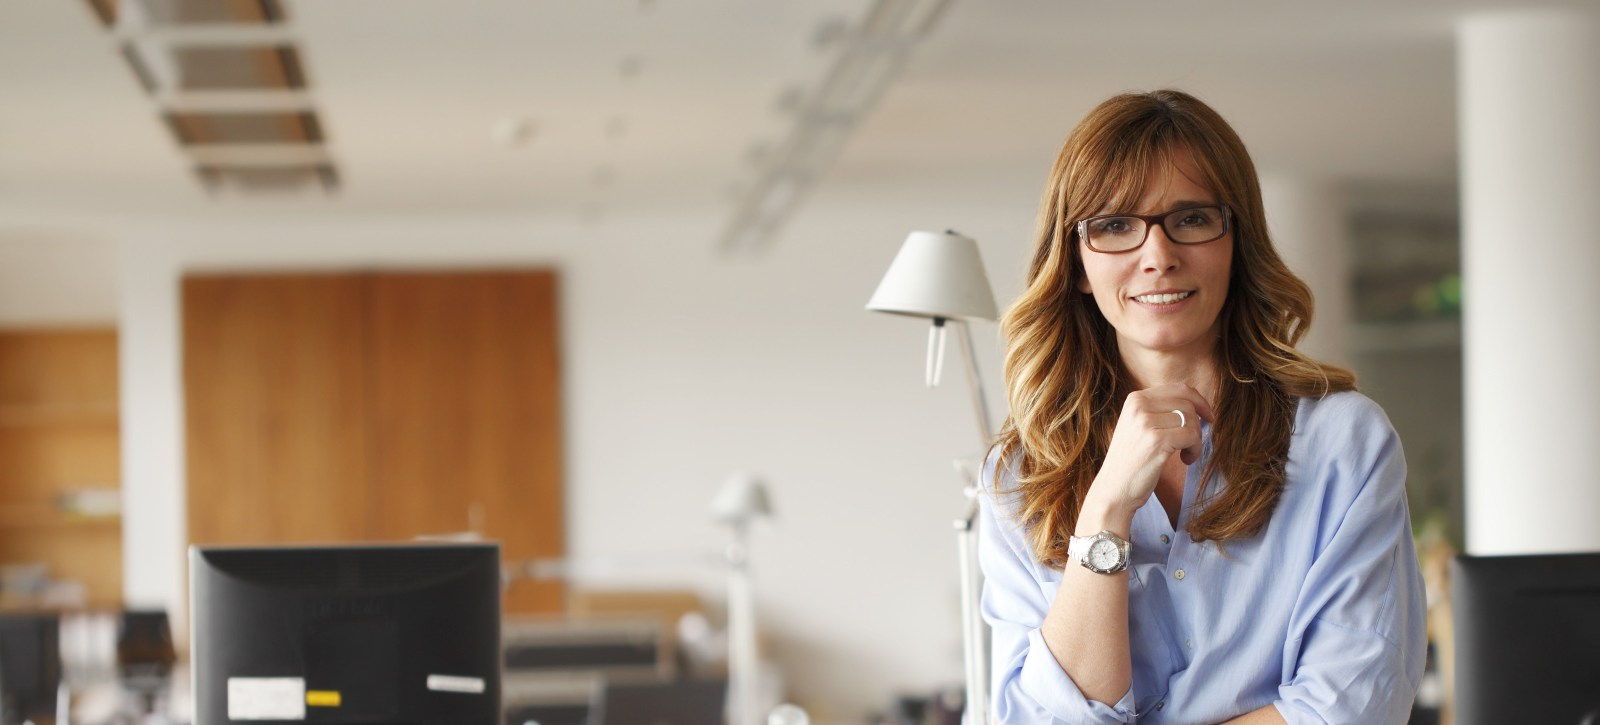 Middle aged woman with glasses smiling in her office